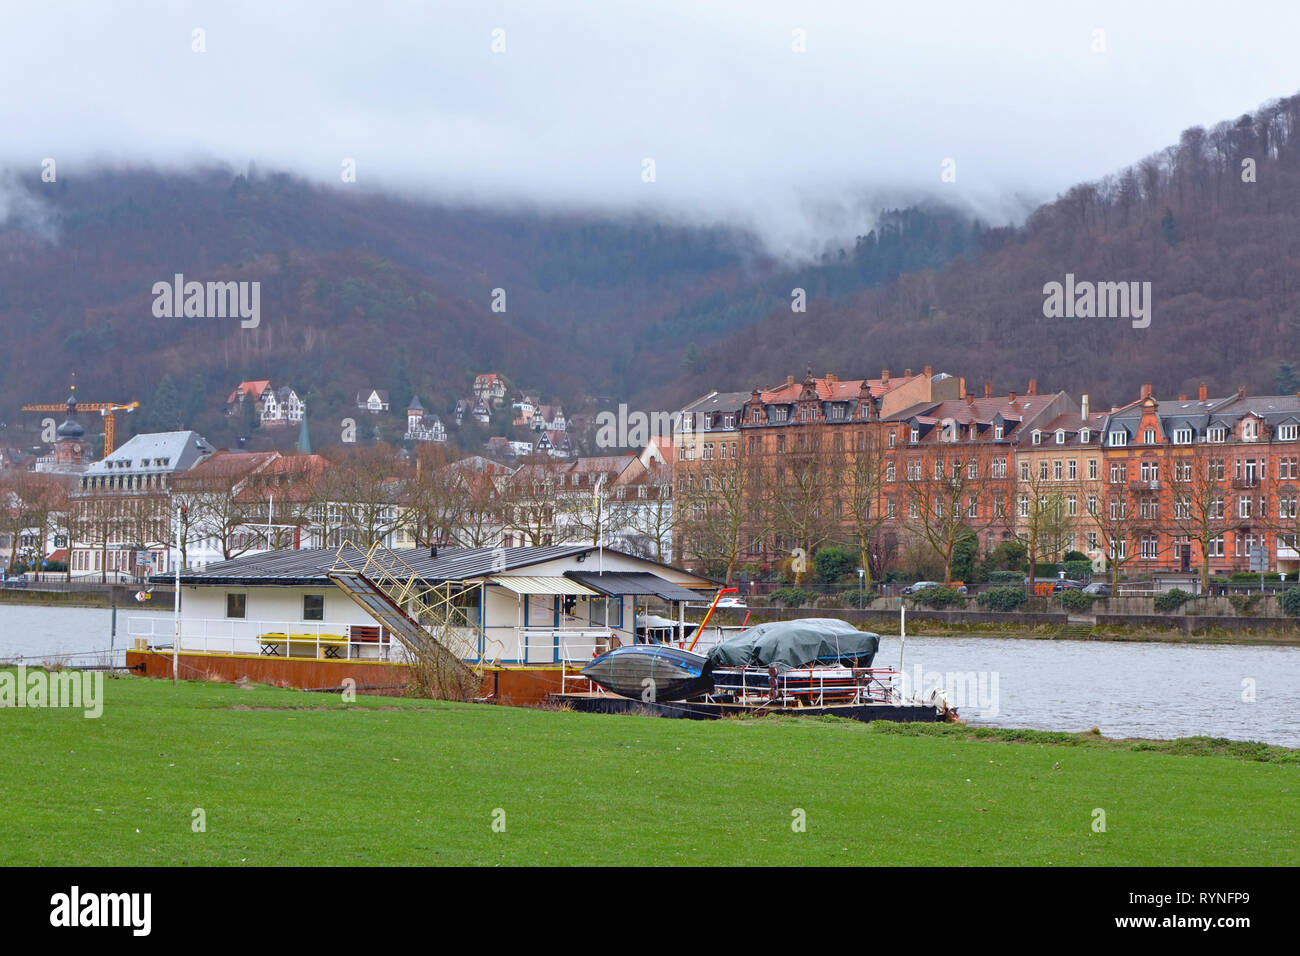 Boat anchored at the Neckar river meadow near city center of Heidelberg, with old buildings and beautiful hill landscape with mist raising in Germany - Stock Image